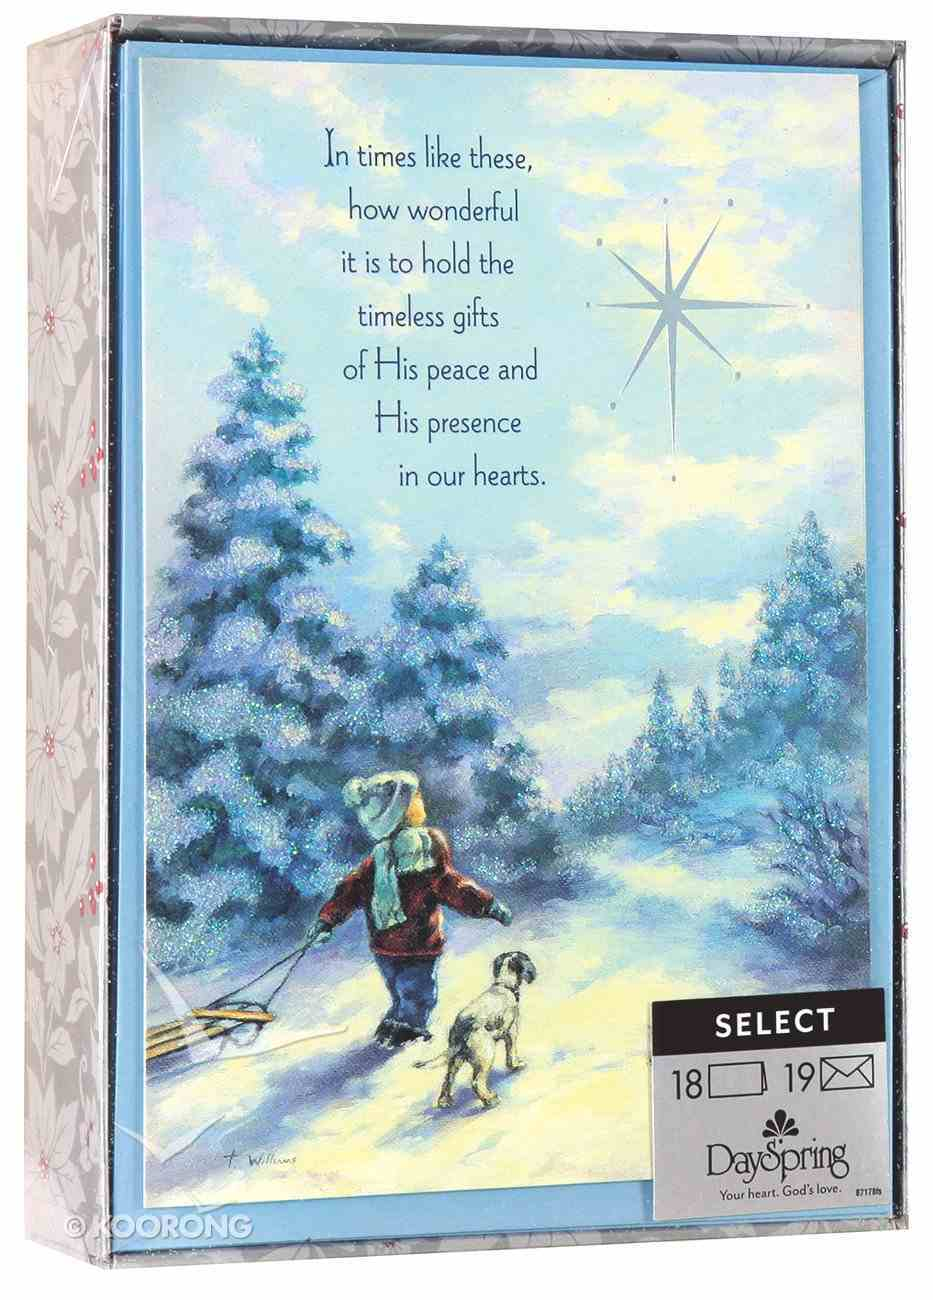 Christmas Boxed Cards: In Times Like These (John 14:27 Kjv) Box